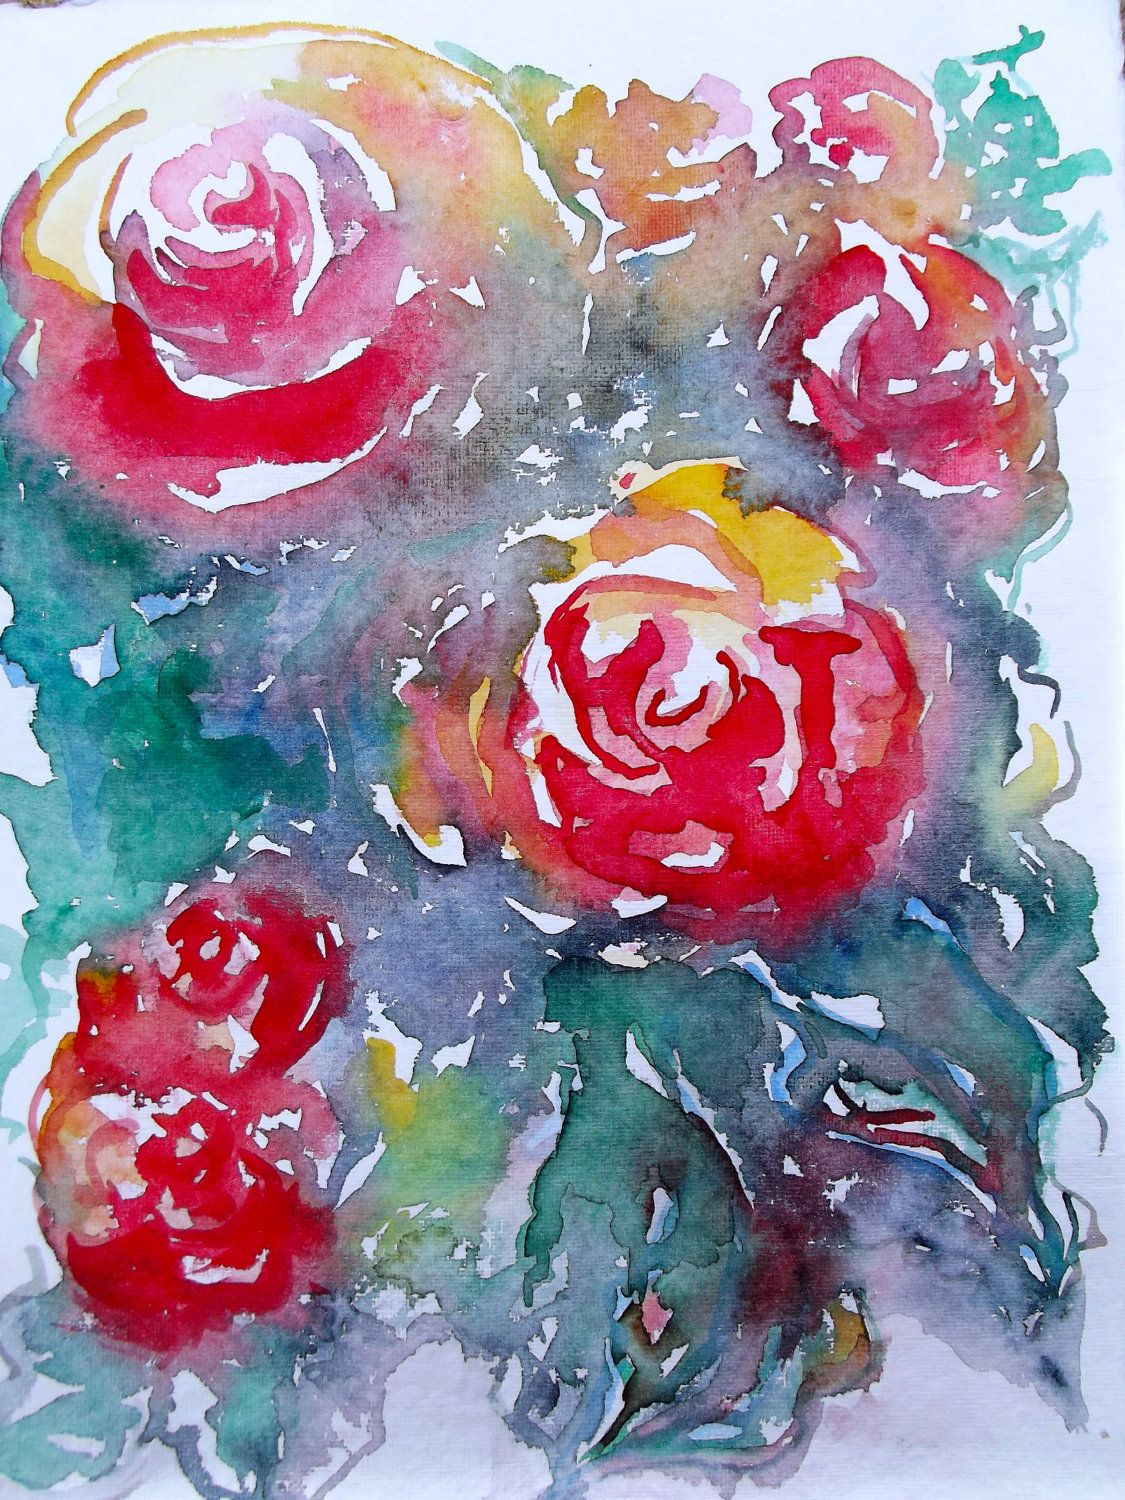 Abstract Floral Watercolor Painting on 100% handmade watercolor paper by Lana